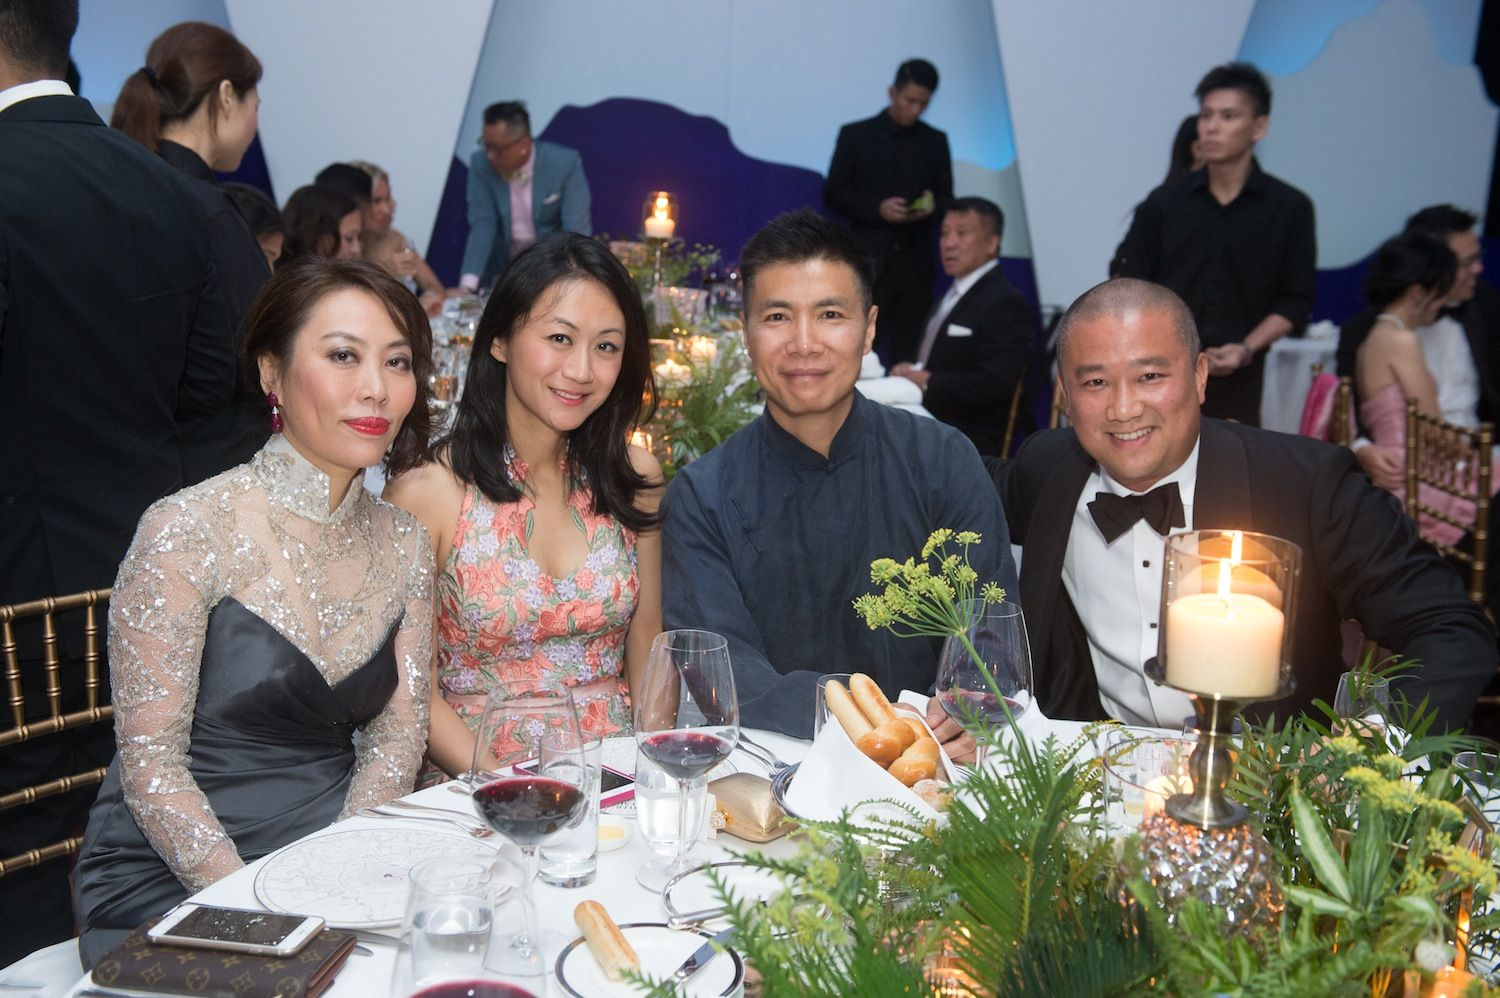 Vicky Lam, Joanne Chan, Douglas Young and Benjamin Cha